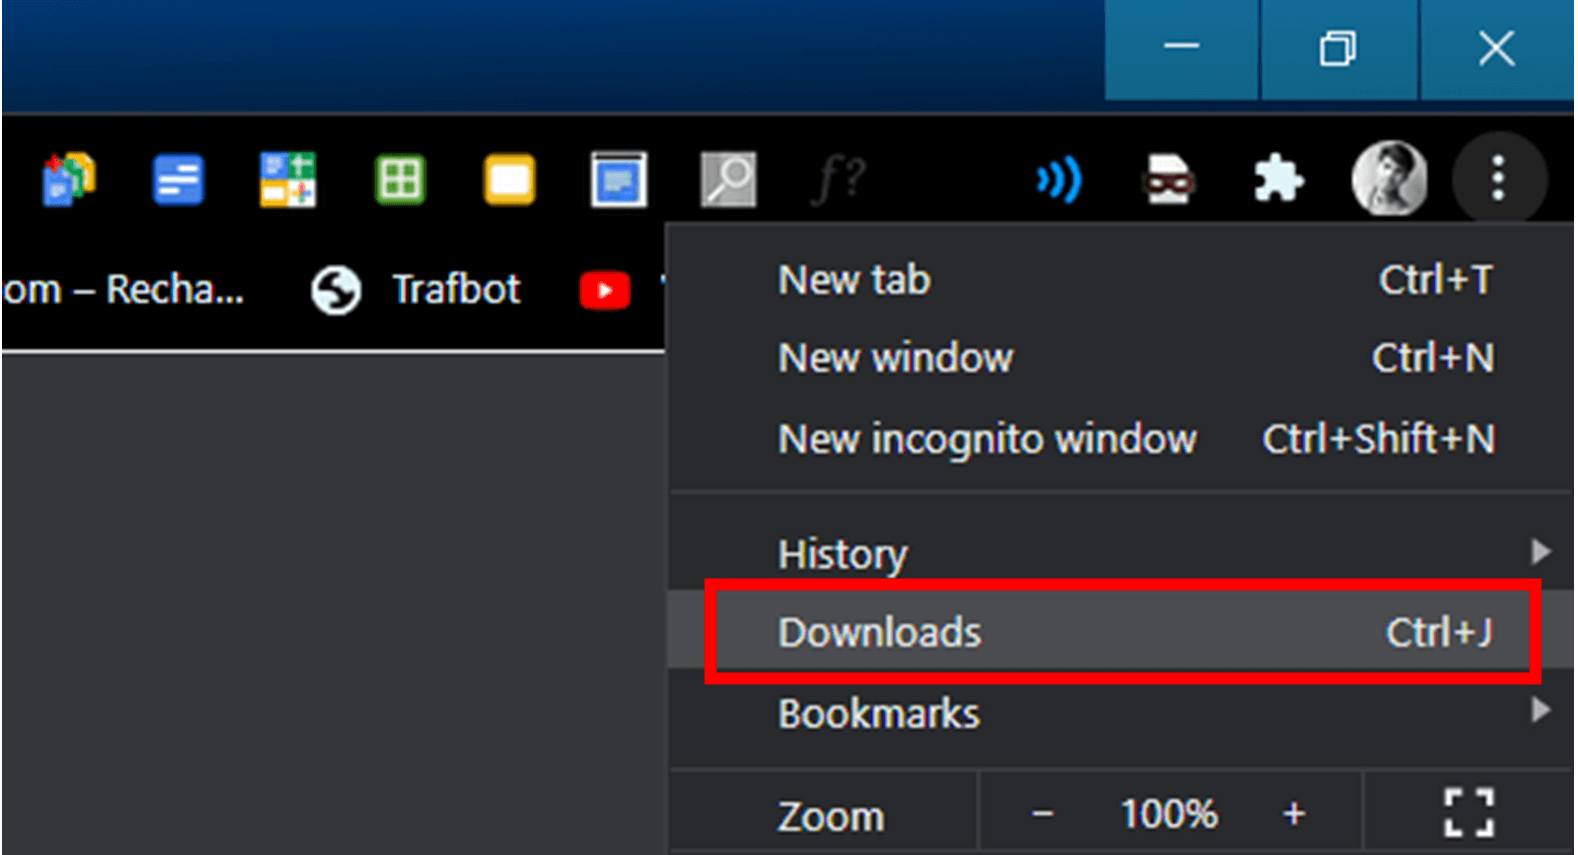 To open this Downloads section from the menu